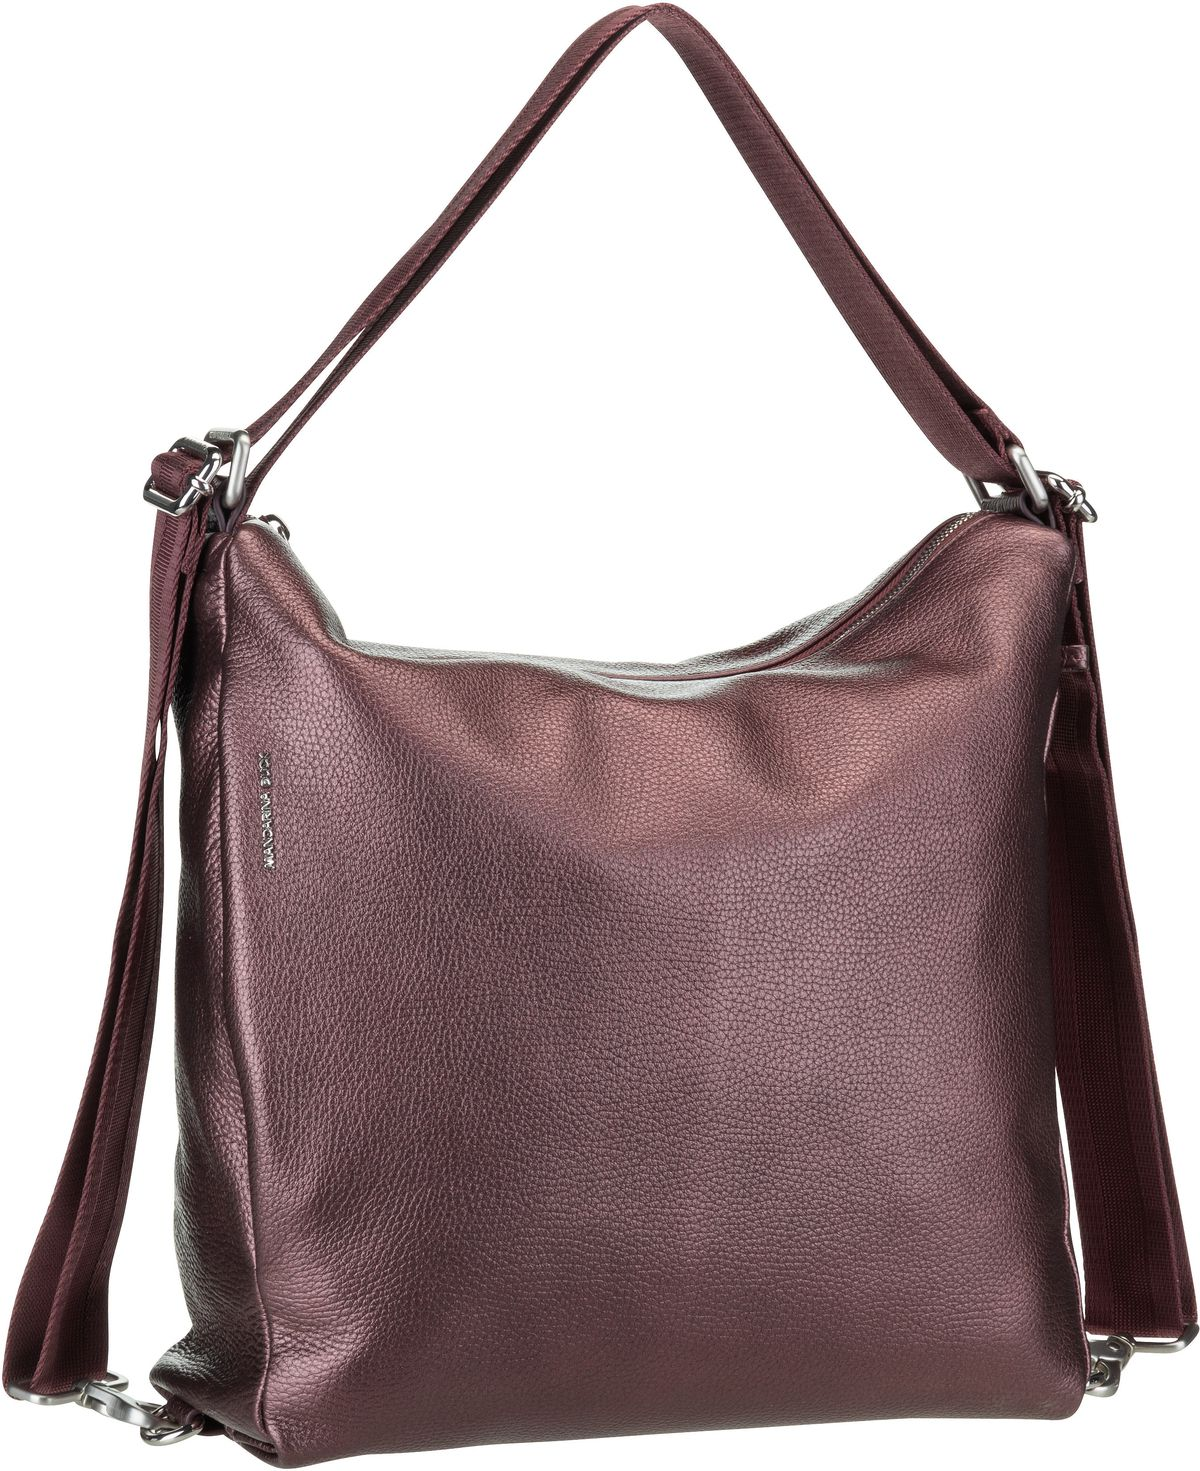 Handtasche Mellow Leather Lux Hobo ZLT72 Blackberry Syrup